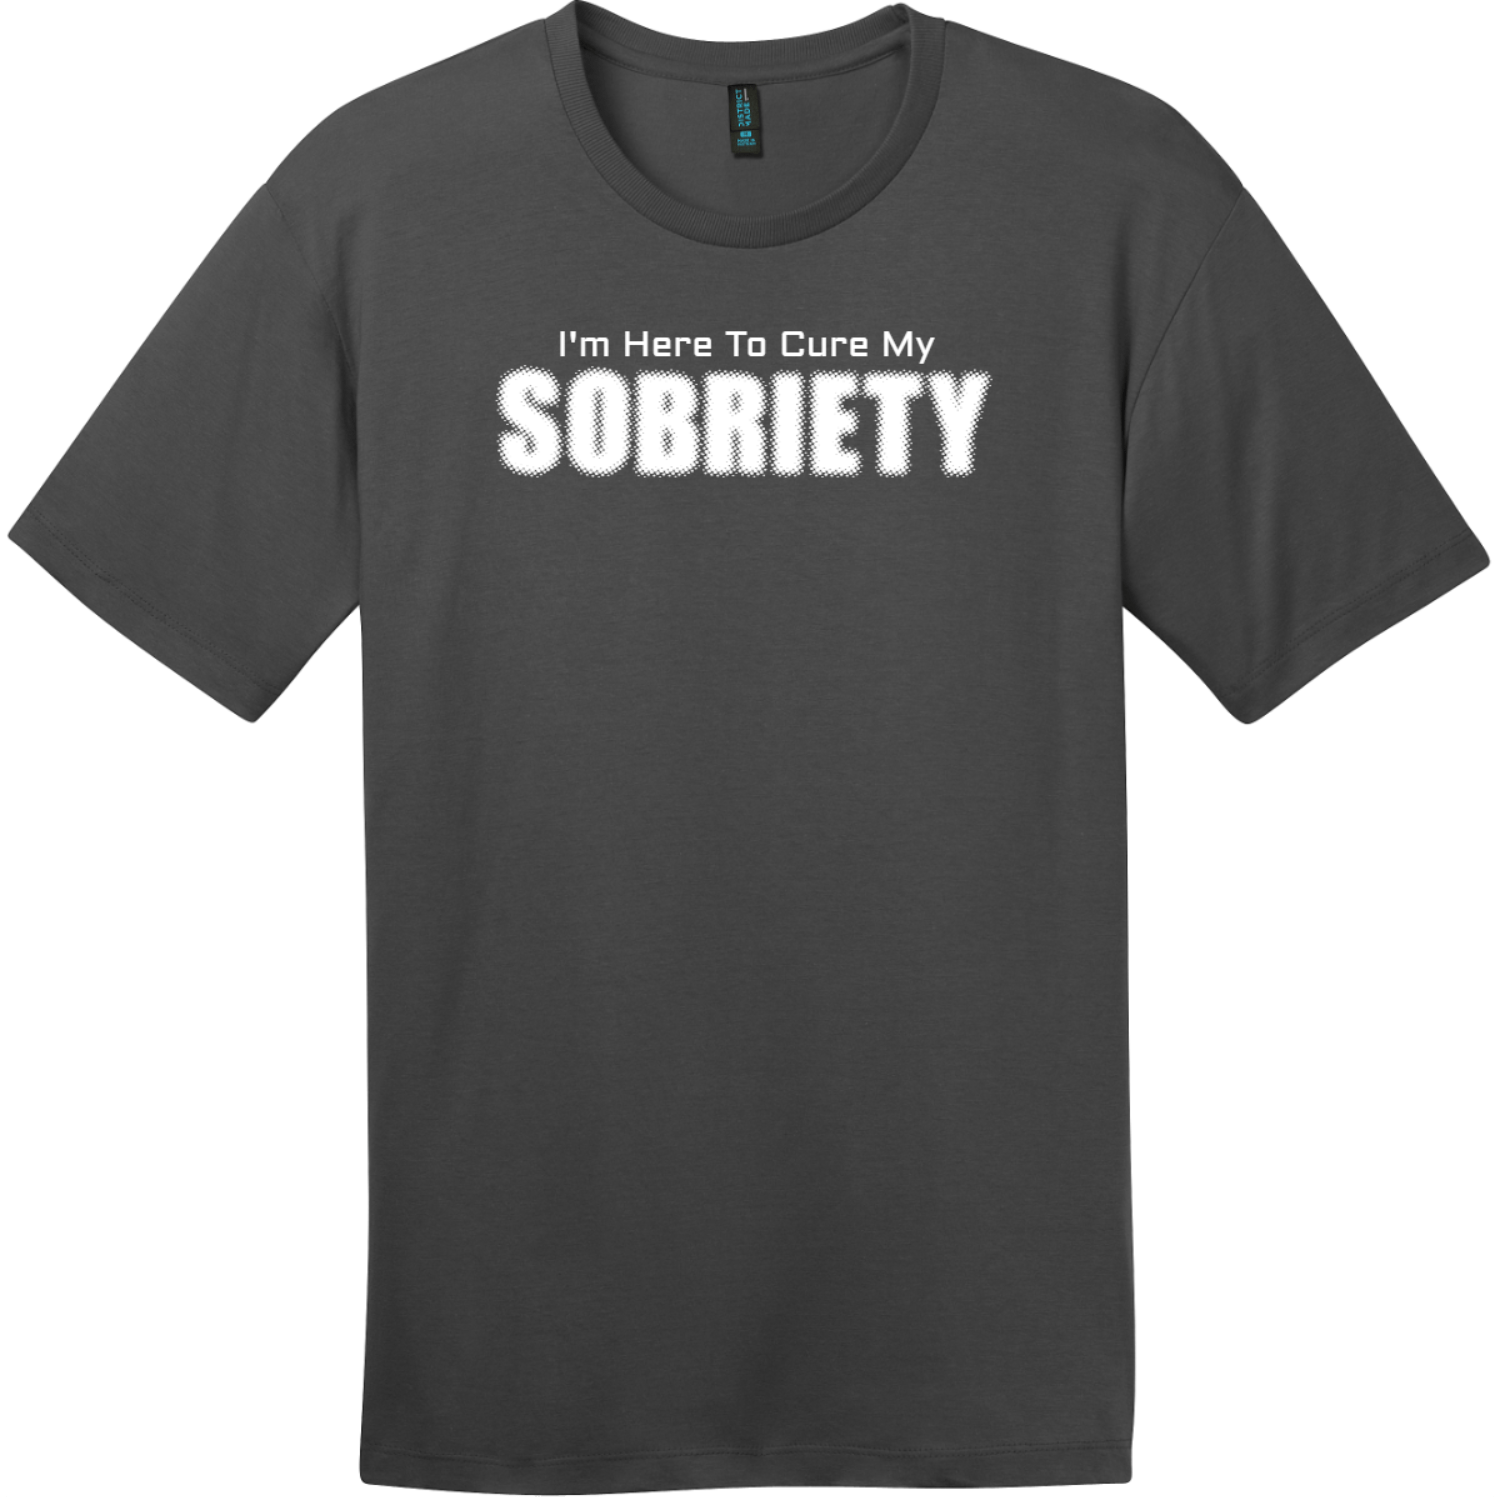 I Am Here To Cure My Sobriety T-Shirt Charcoal District Perfect Weight Tee DT104